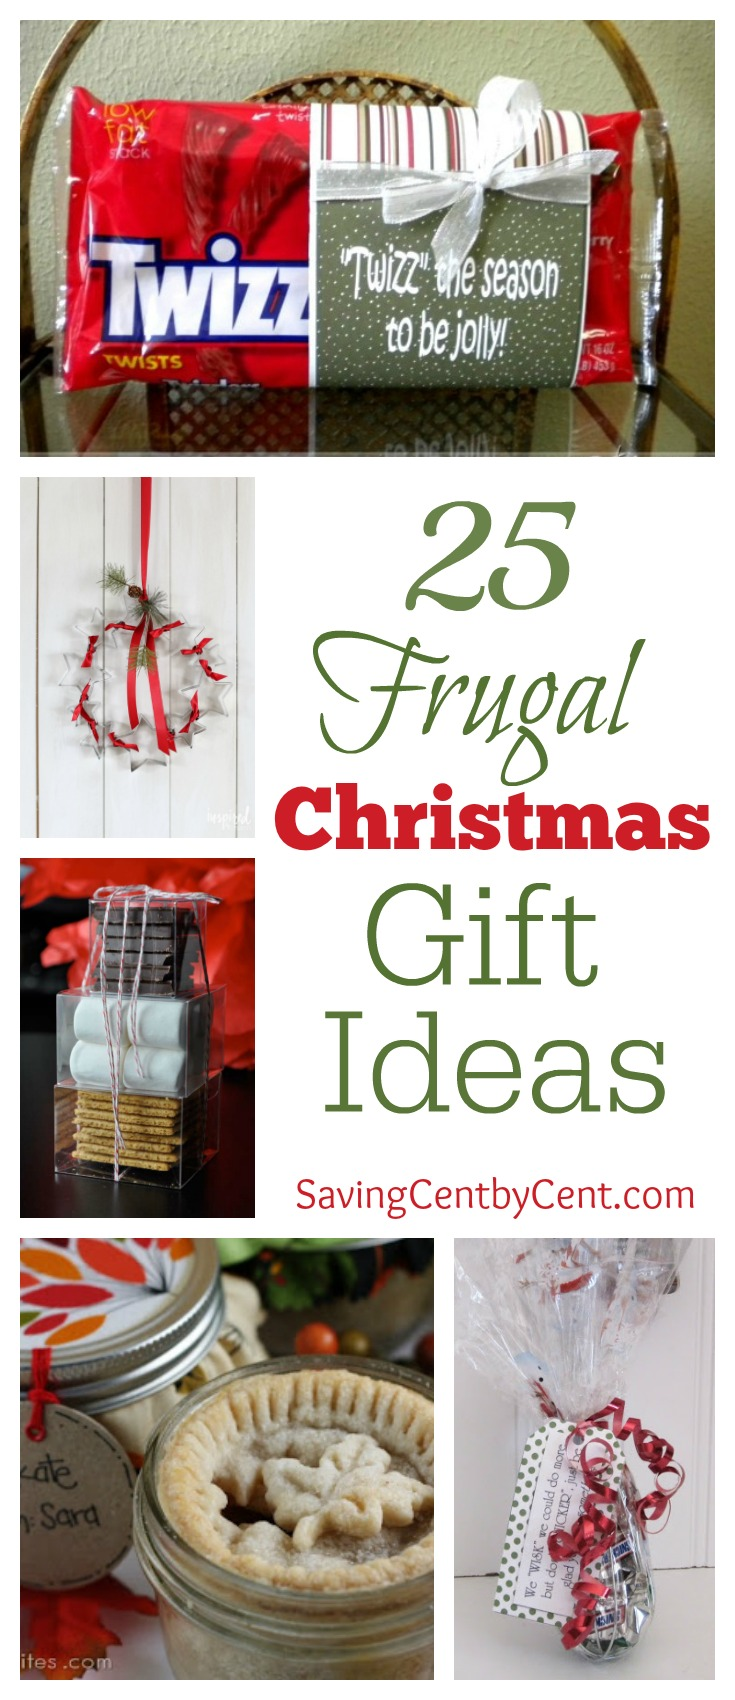 25 Frugal Christmas Gift Ideas (Part 1) - Saving Cent by Cent